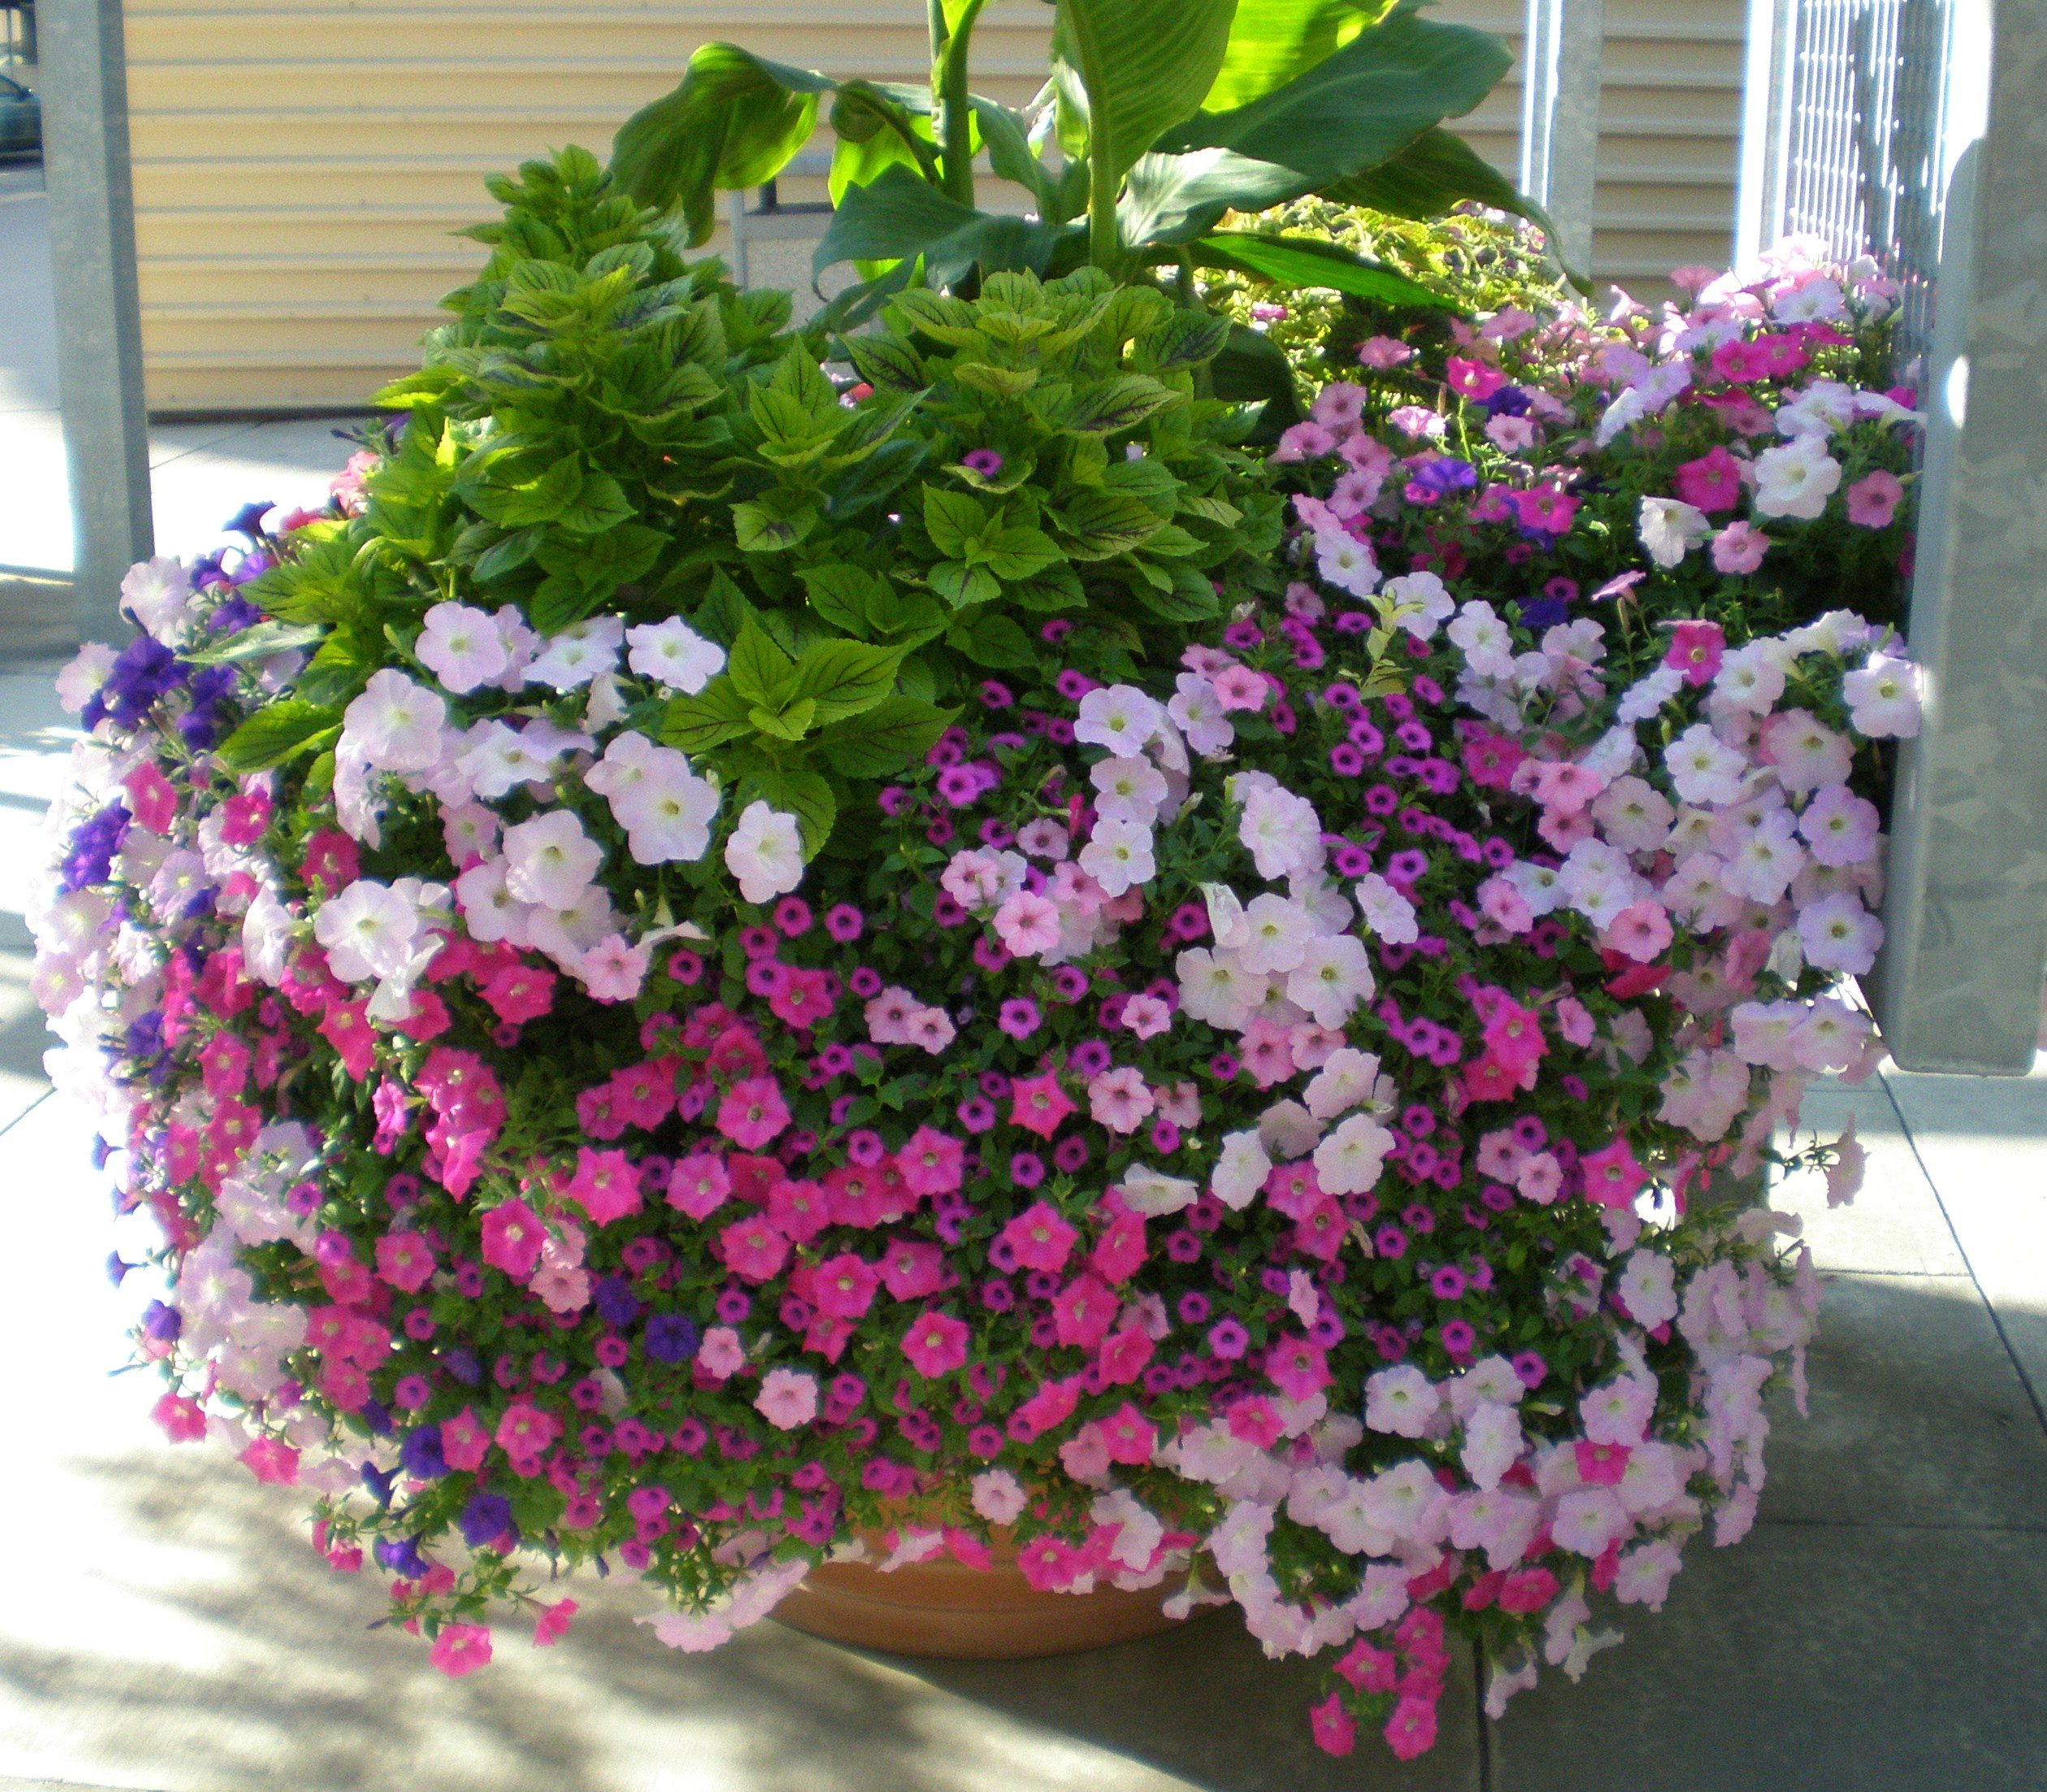 File:Floral arrangement of petunias in Columbus, Ohio.JPG